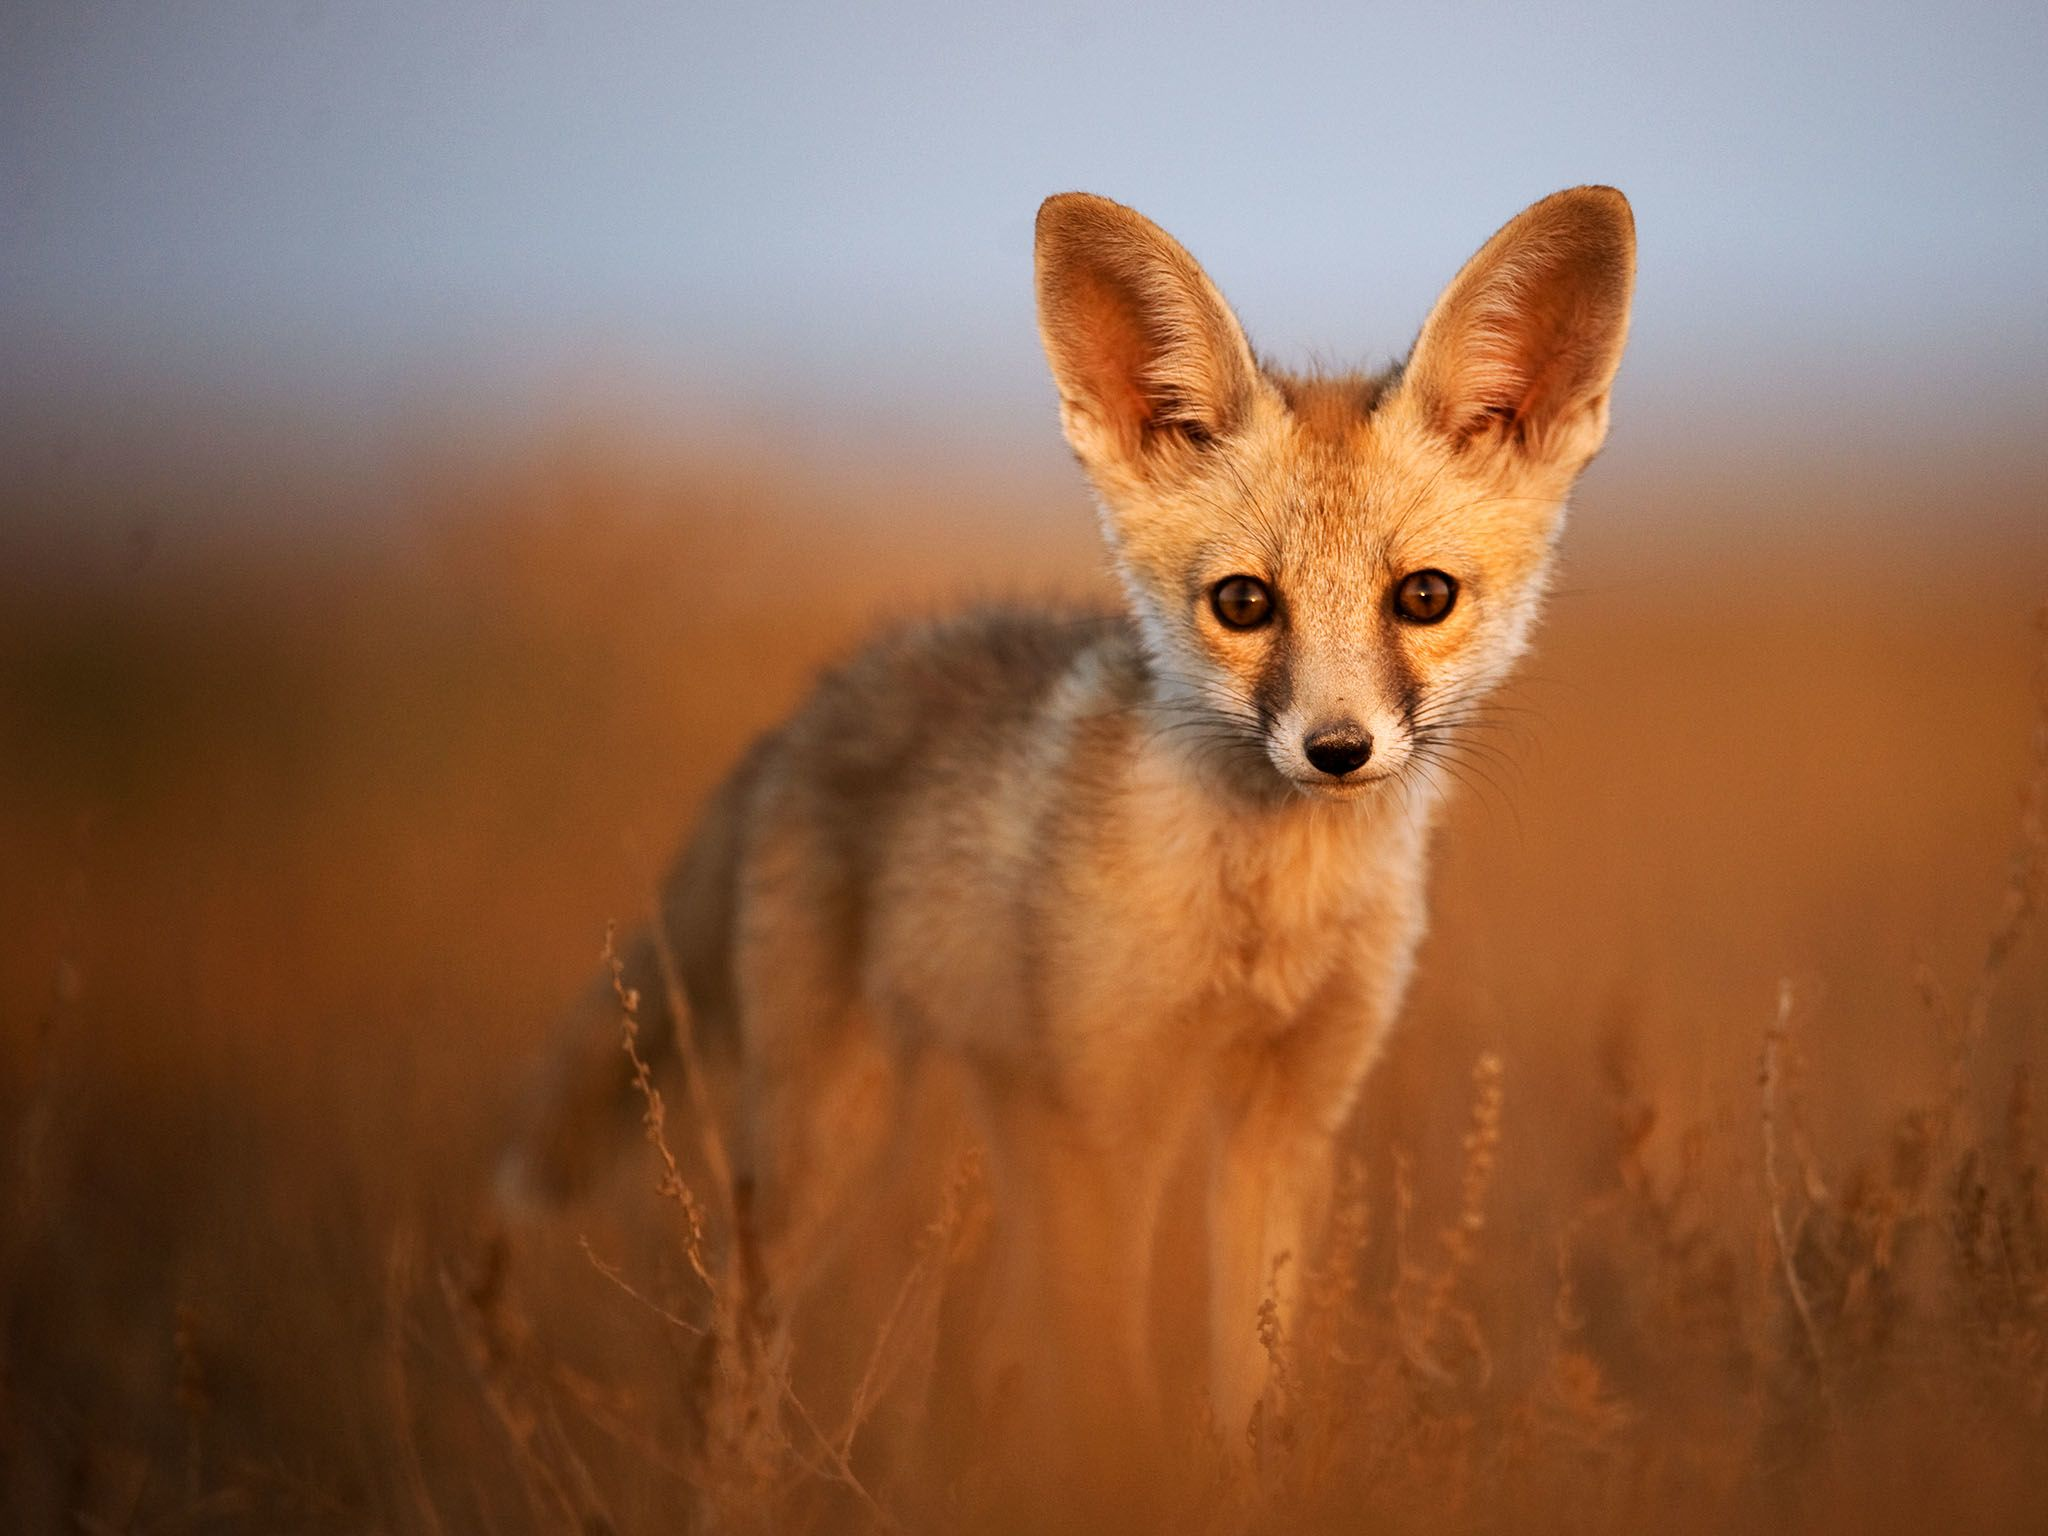 Gir National Park, Gujarat, India: Close-up of a desert fox looking into the camera. This image... [Photo of the day - July 2016]